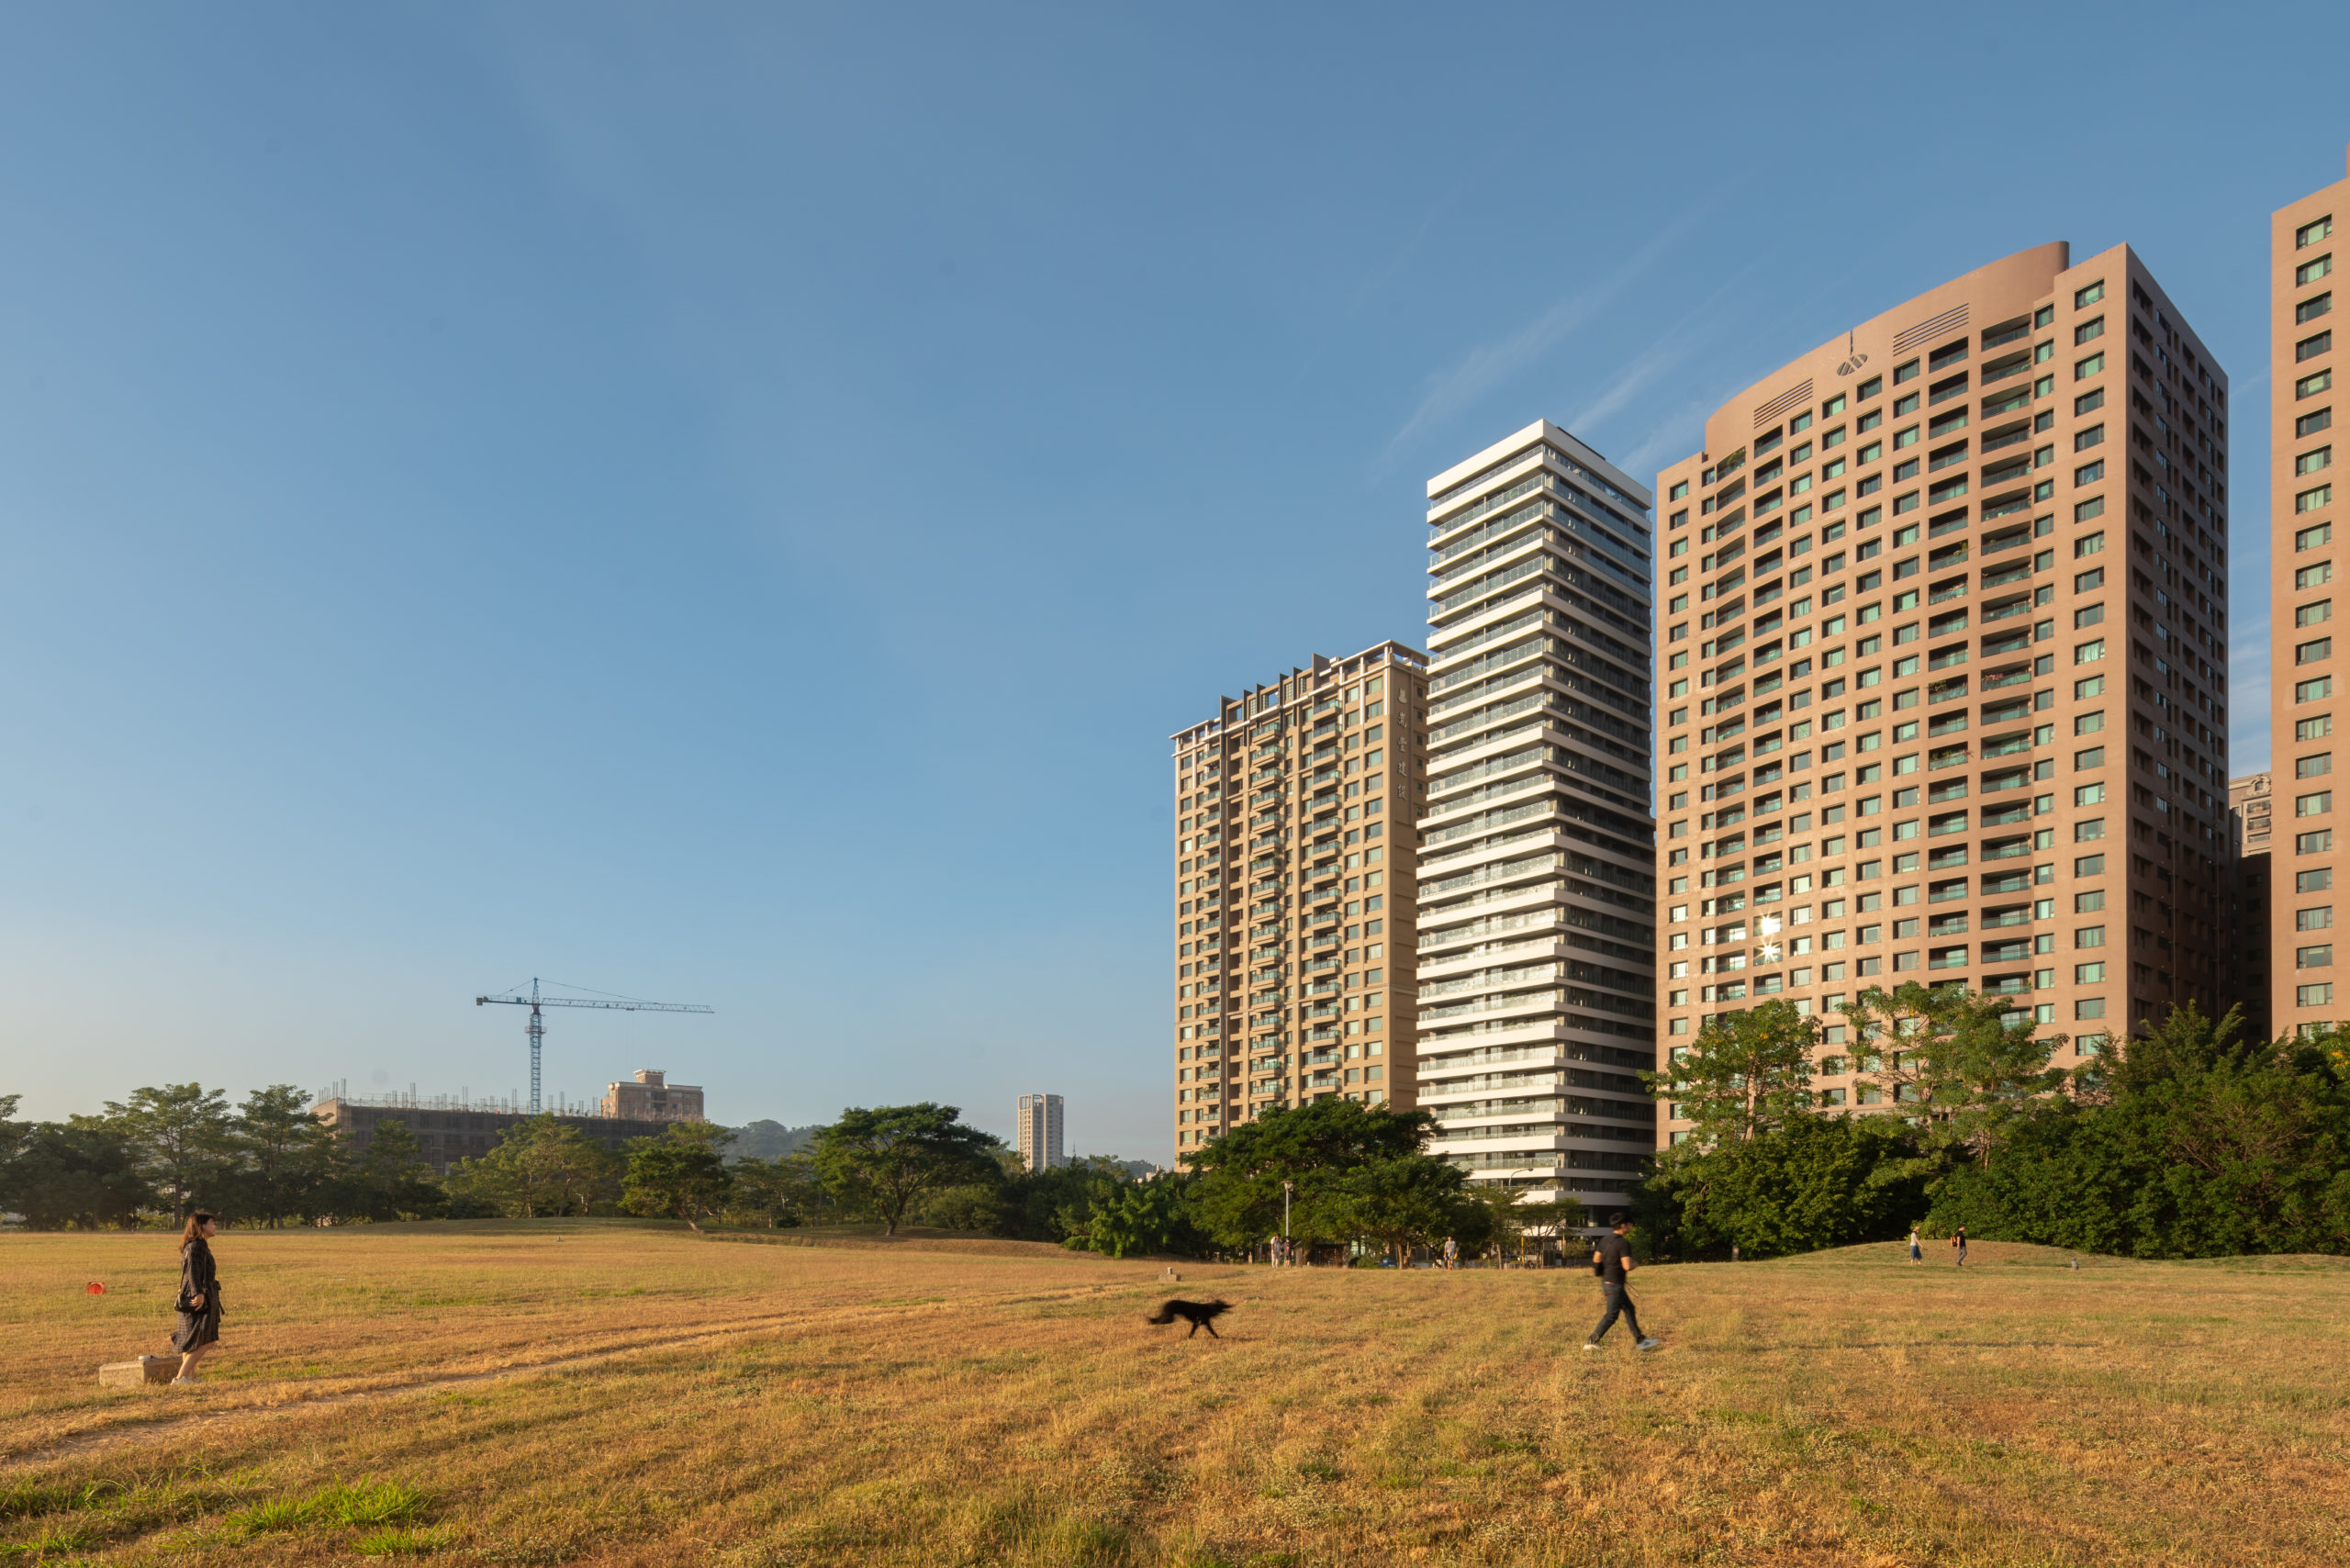 spatial-practice-one-more-residential-tower-kaohsiung-taiwan- park-view